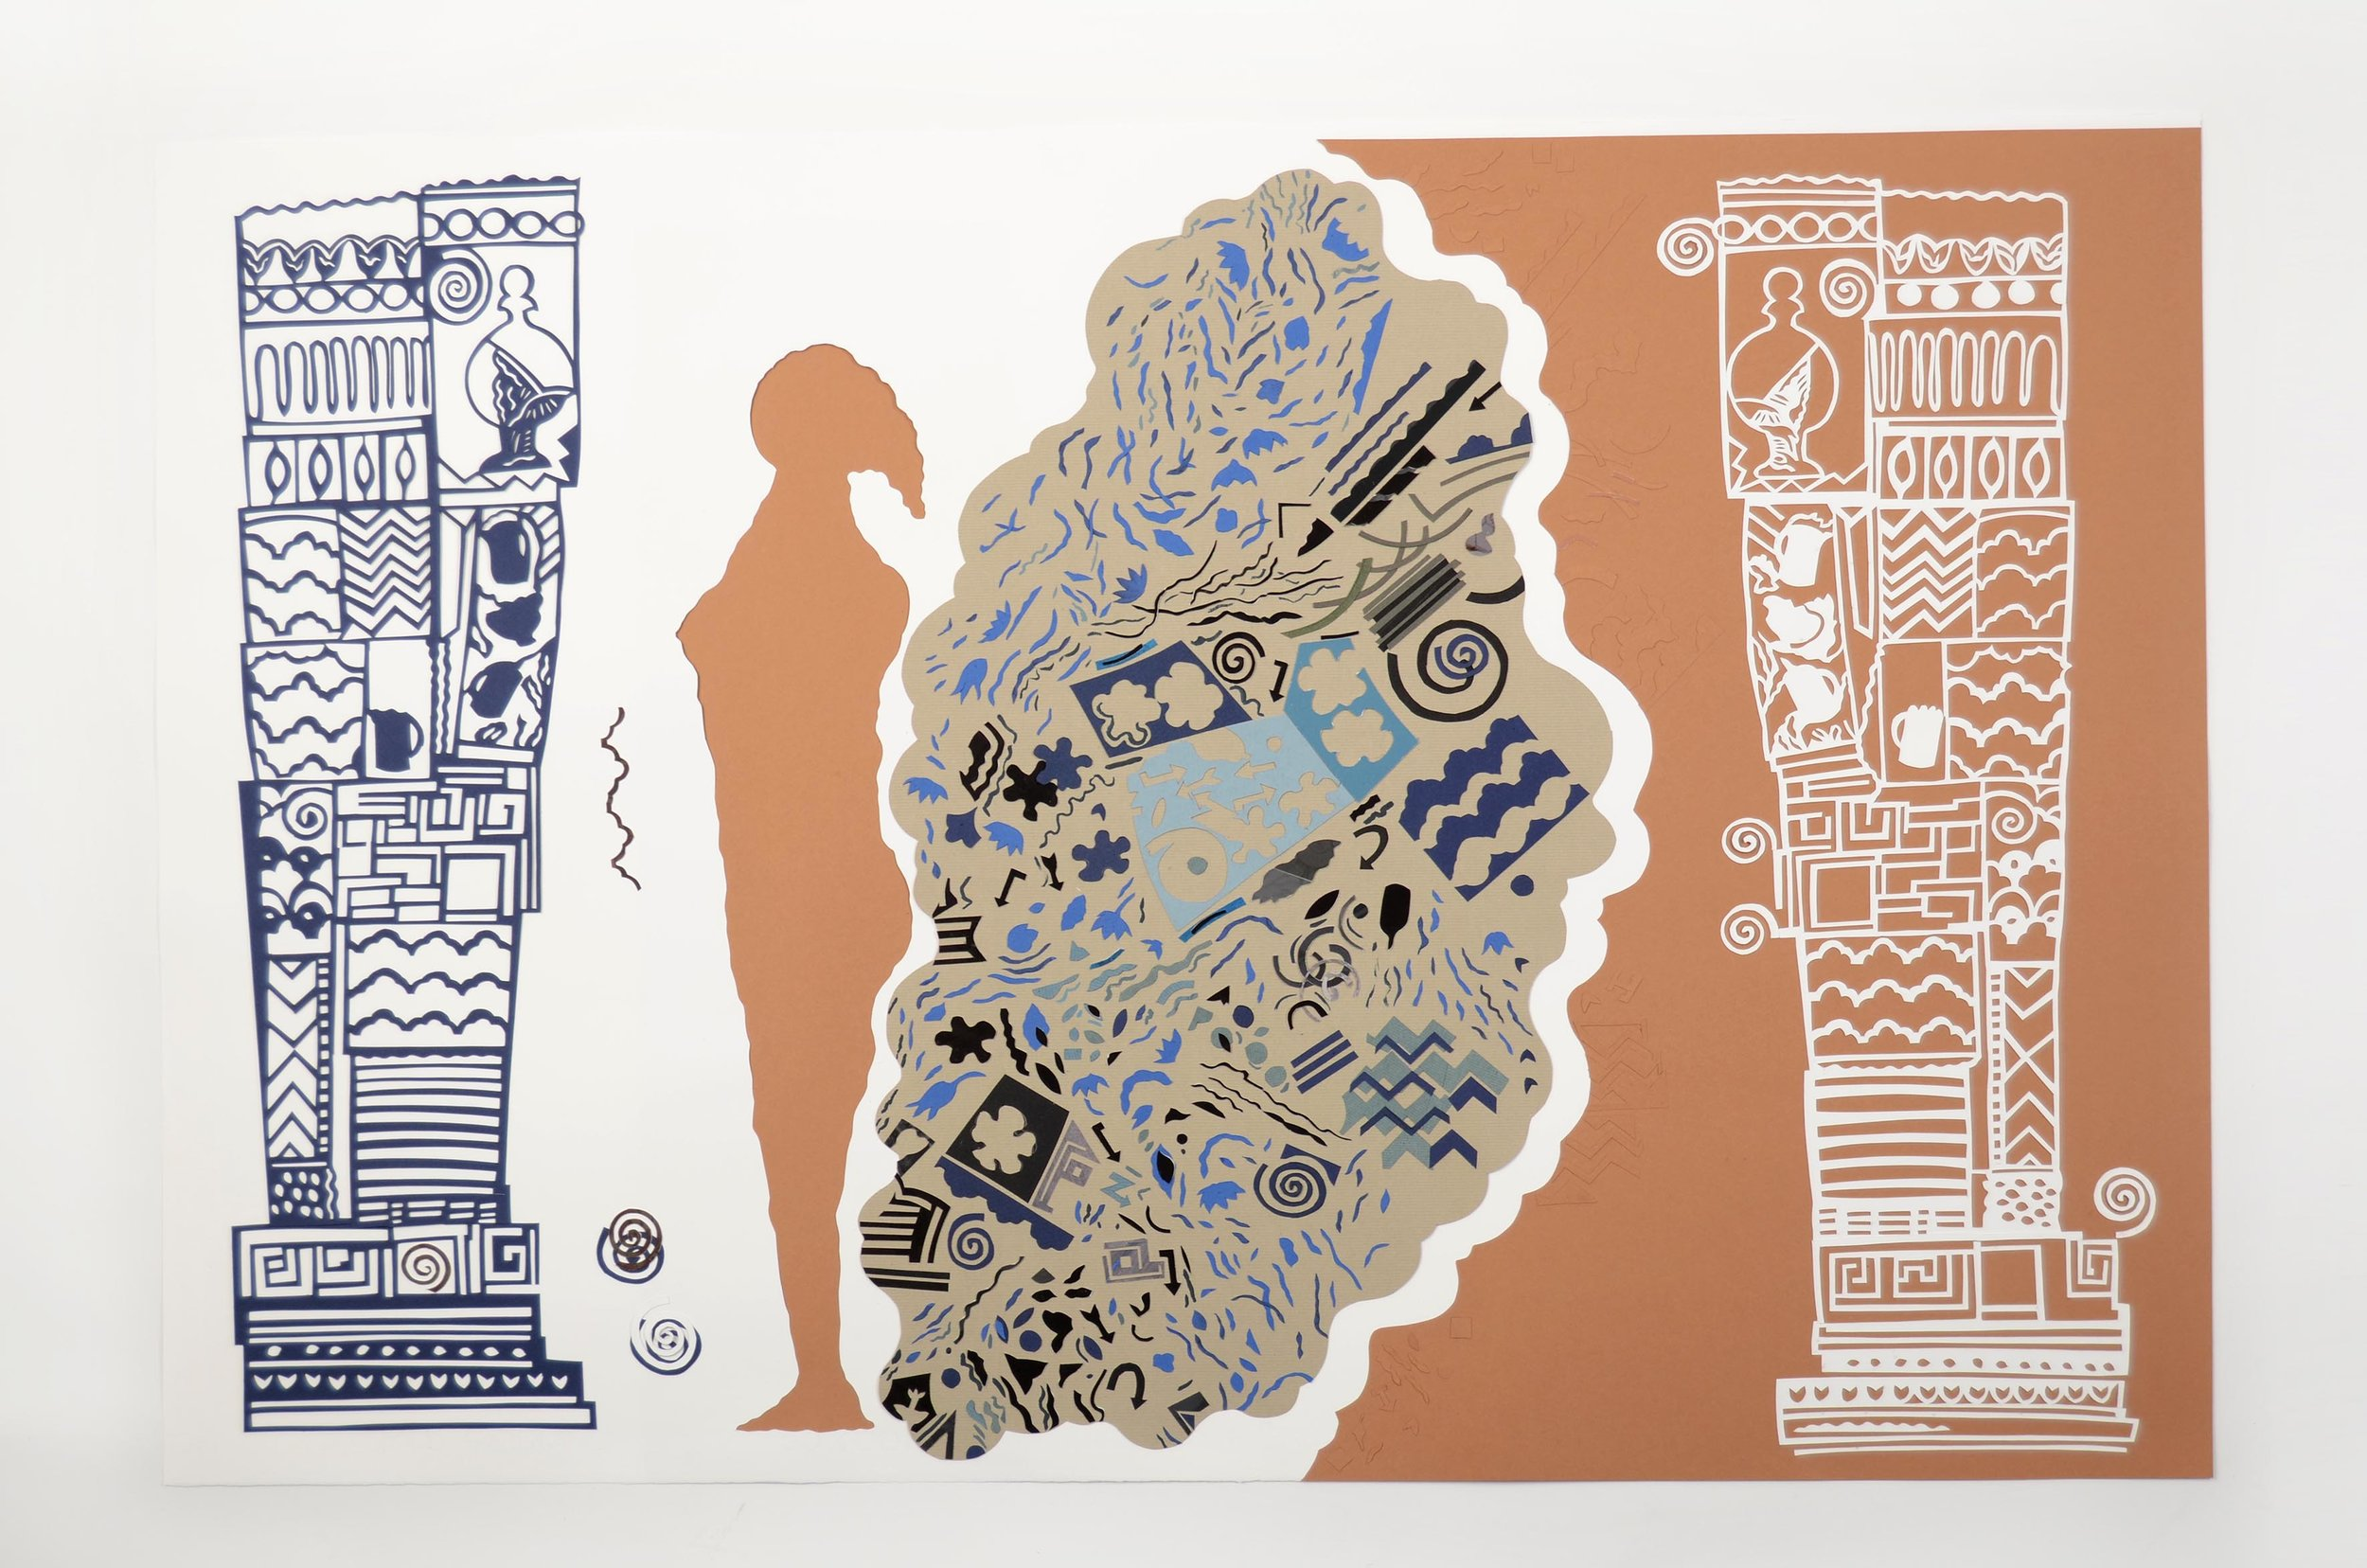 Charlotte Hodes,  Proposition 36 Pillar , cut printed and painted papers, 63.2 x 93.8 cm, 2014.   https://charlottehodes.com/portfolio/the-grammar-of-ornament/